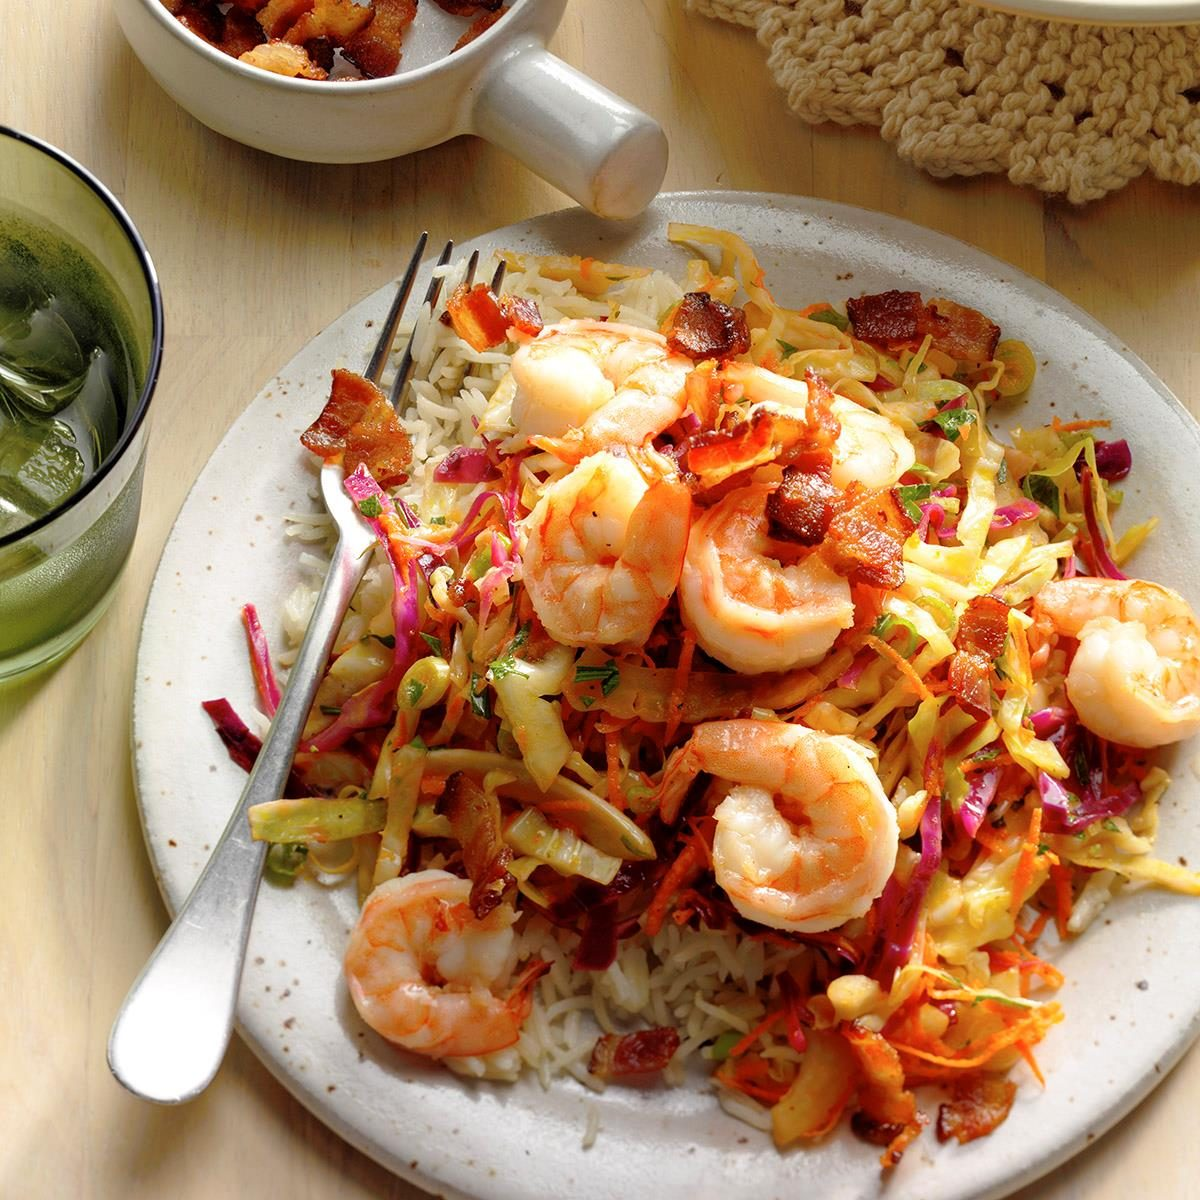 Shrimp with Warm German-Style Coleslaw